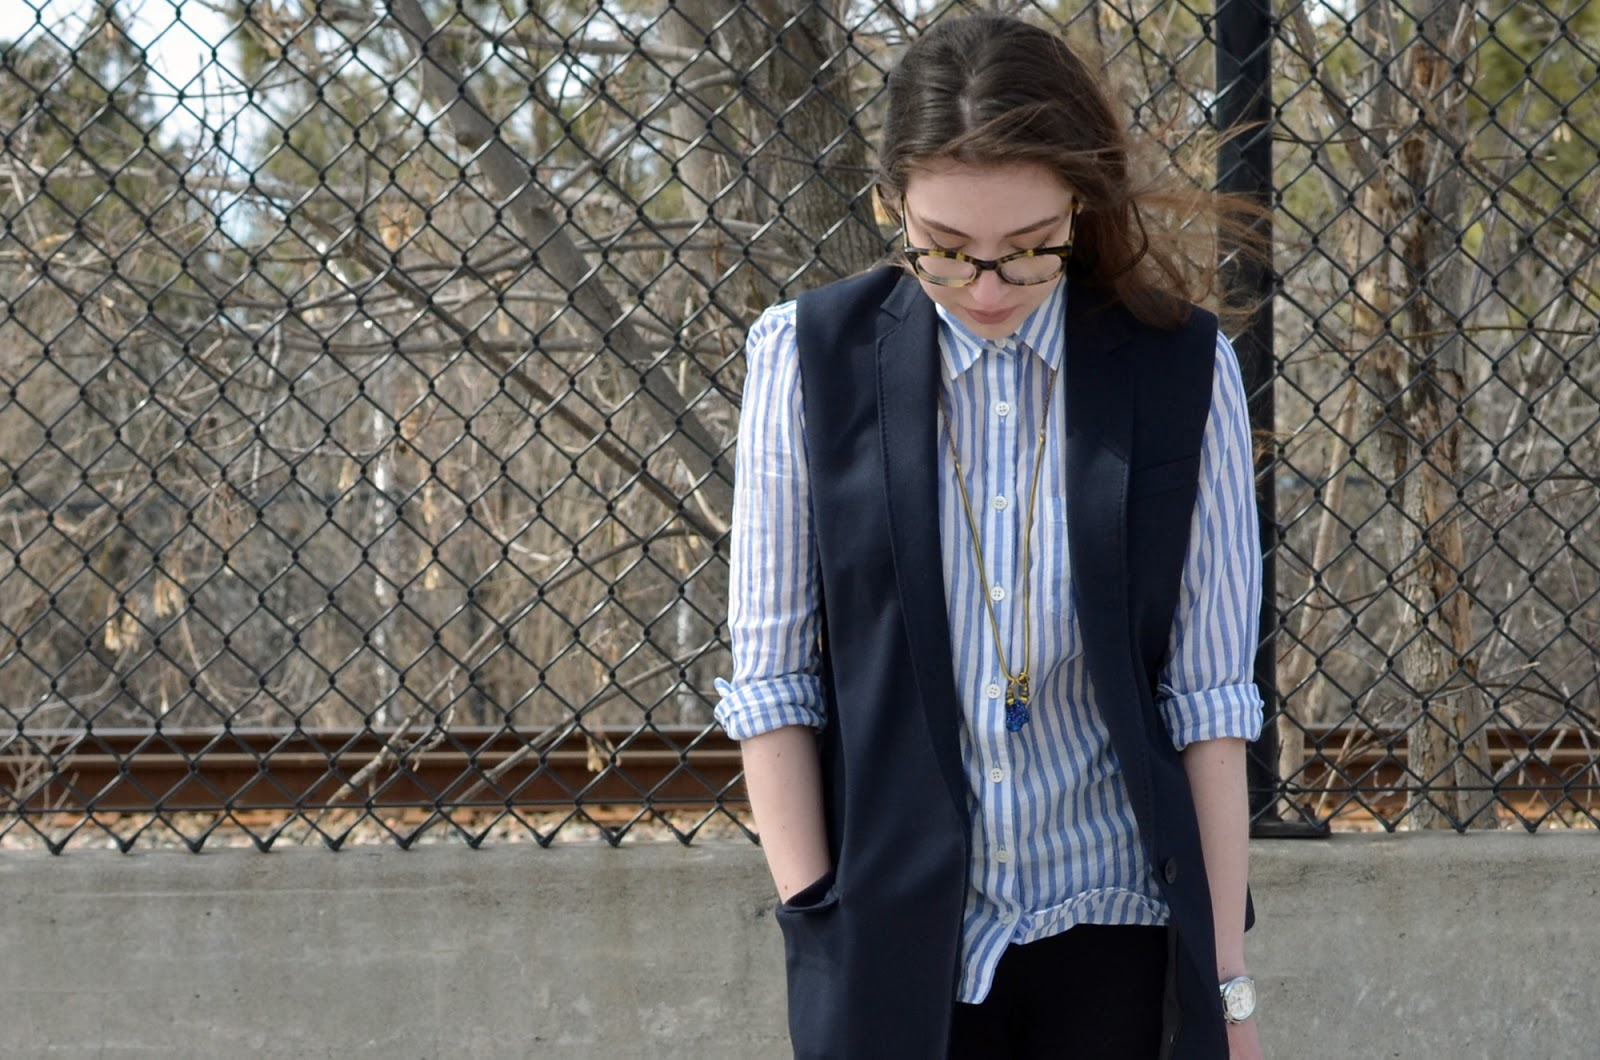 OOTD ft. Rag and Bone long vest, Victoire Hen necklace, J.Crew shirt, and Warby Parker glasses